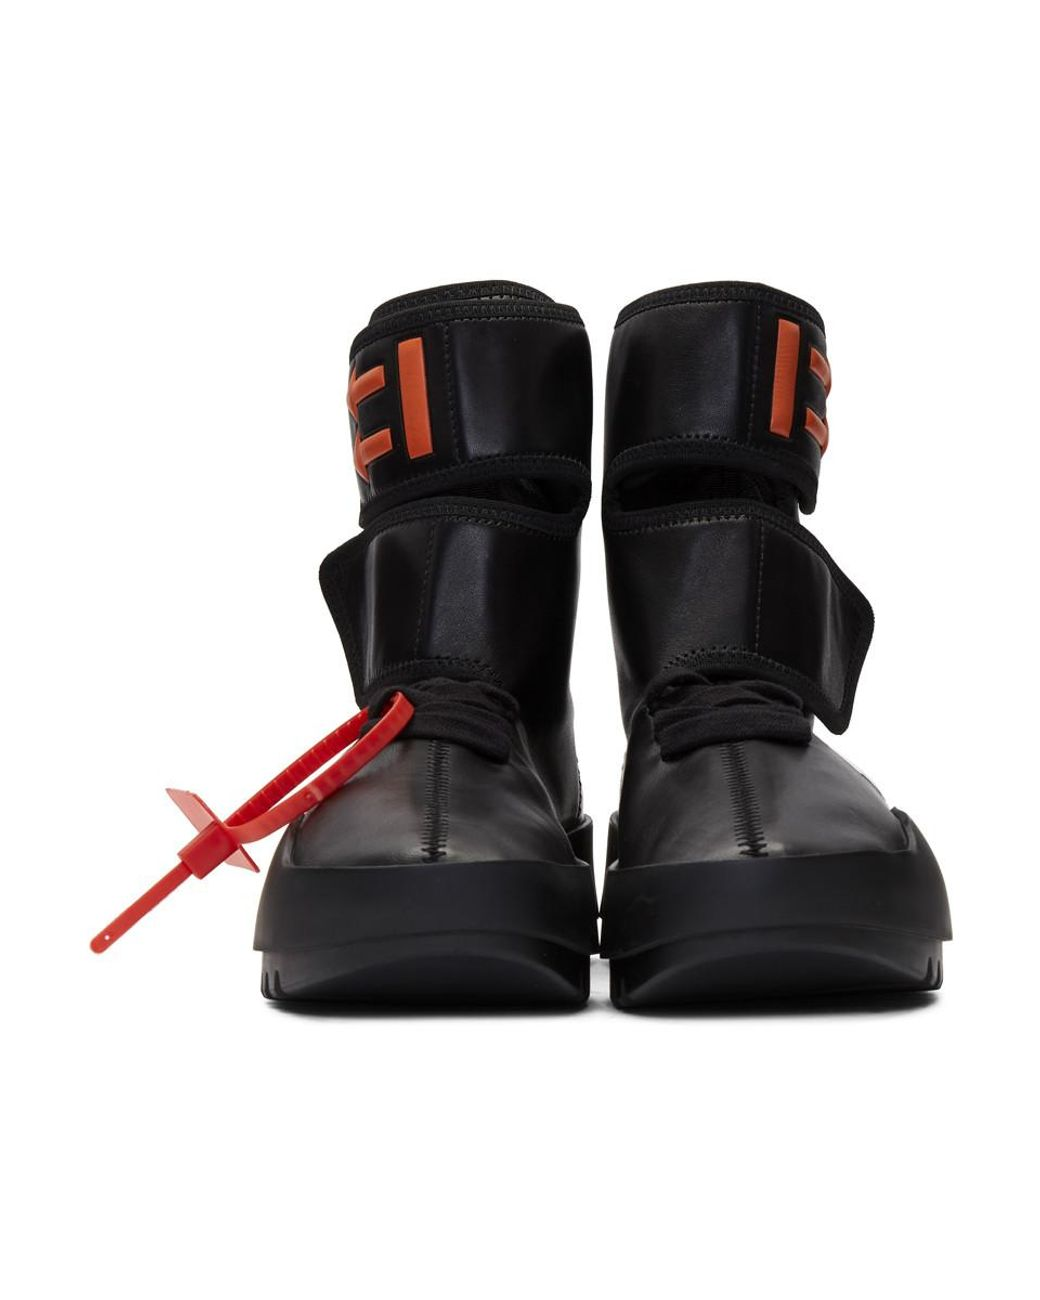 ed0989ef22d Off-White c/o Virgil Abloh - Black Leather Moto Wrap High-top Sneakers -  Lyst